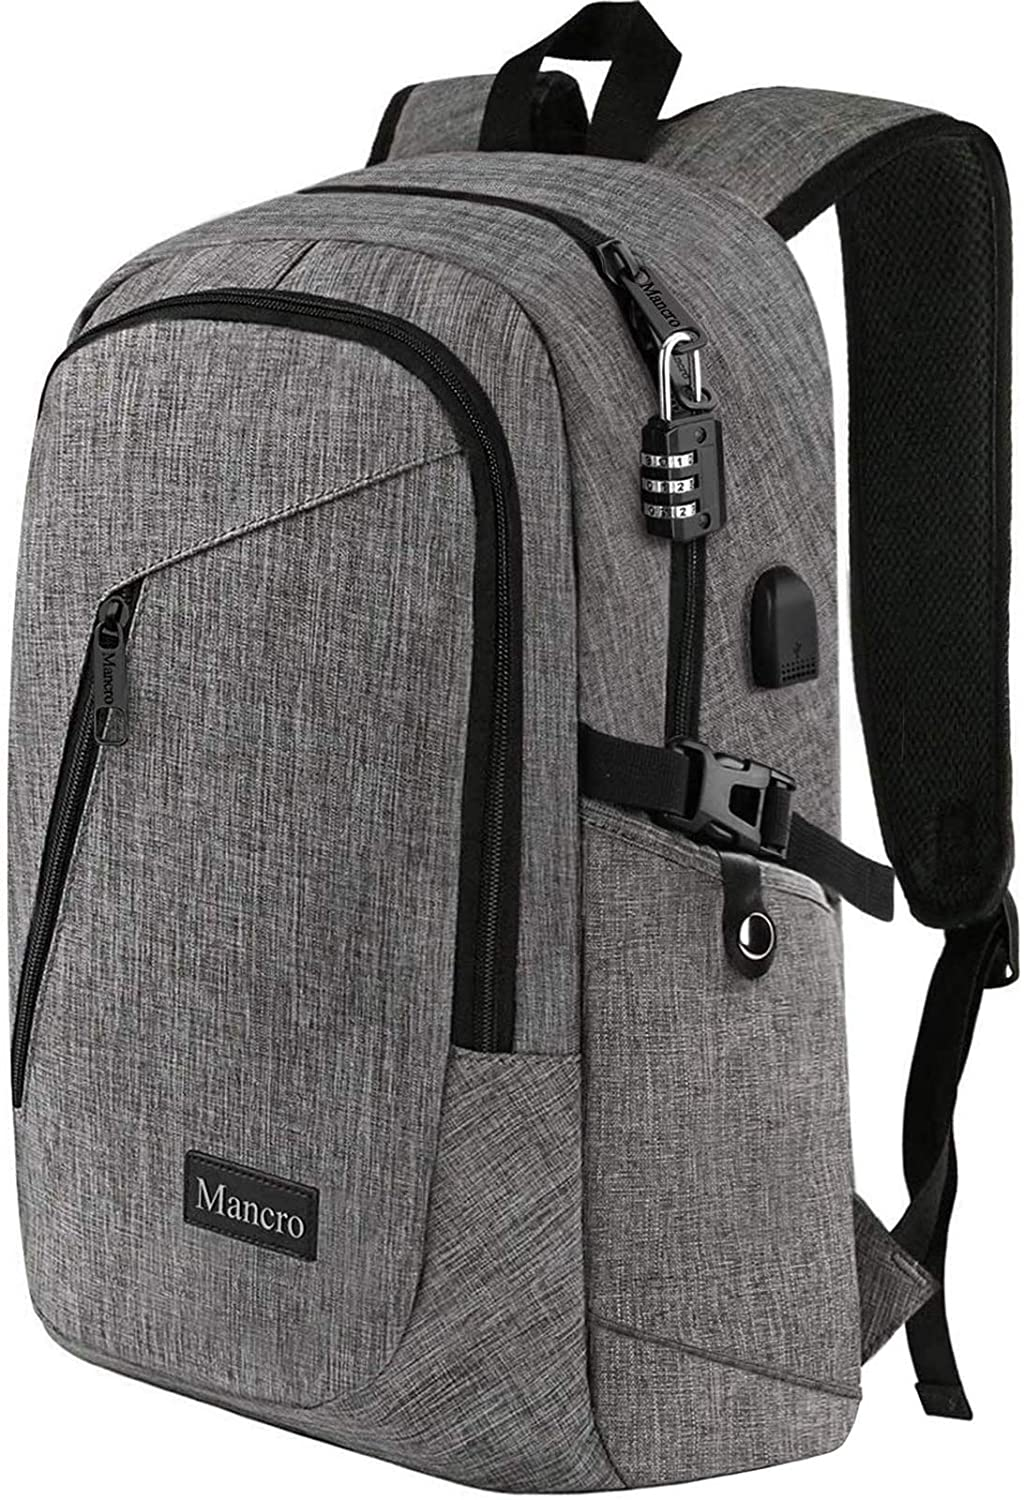 Mancro Slim Laptop Backpack